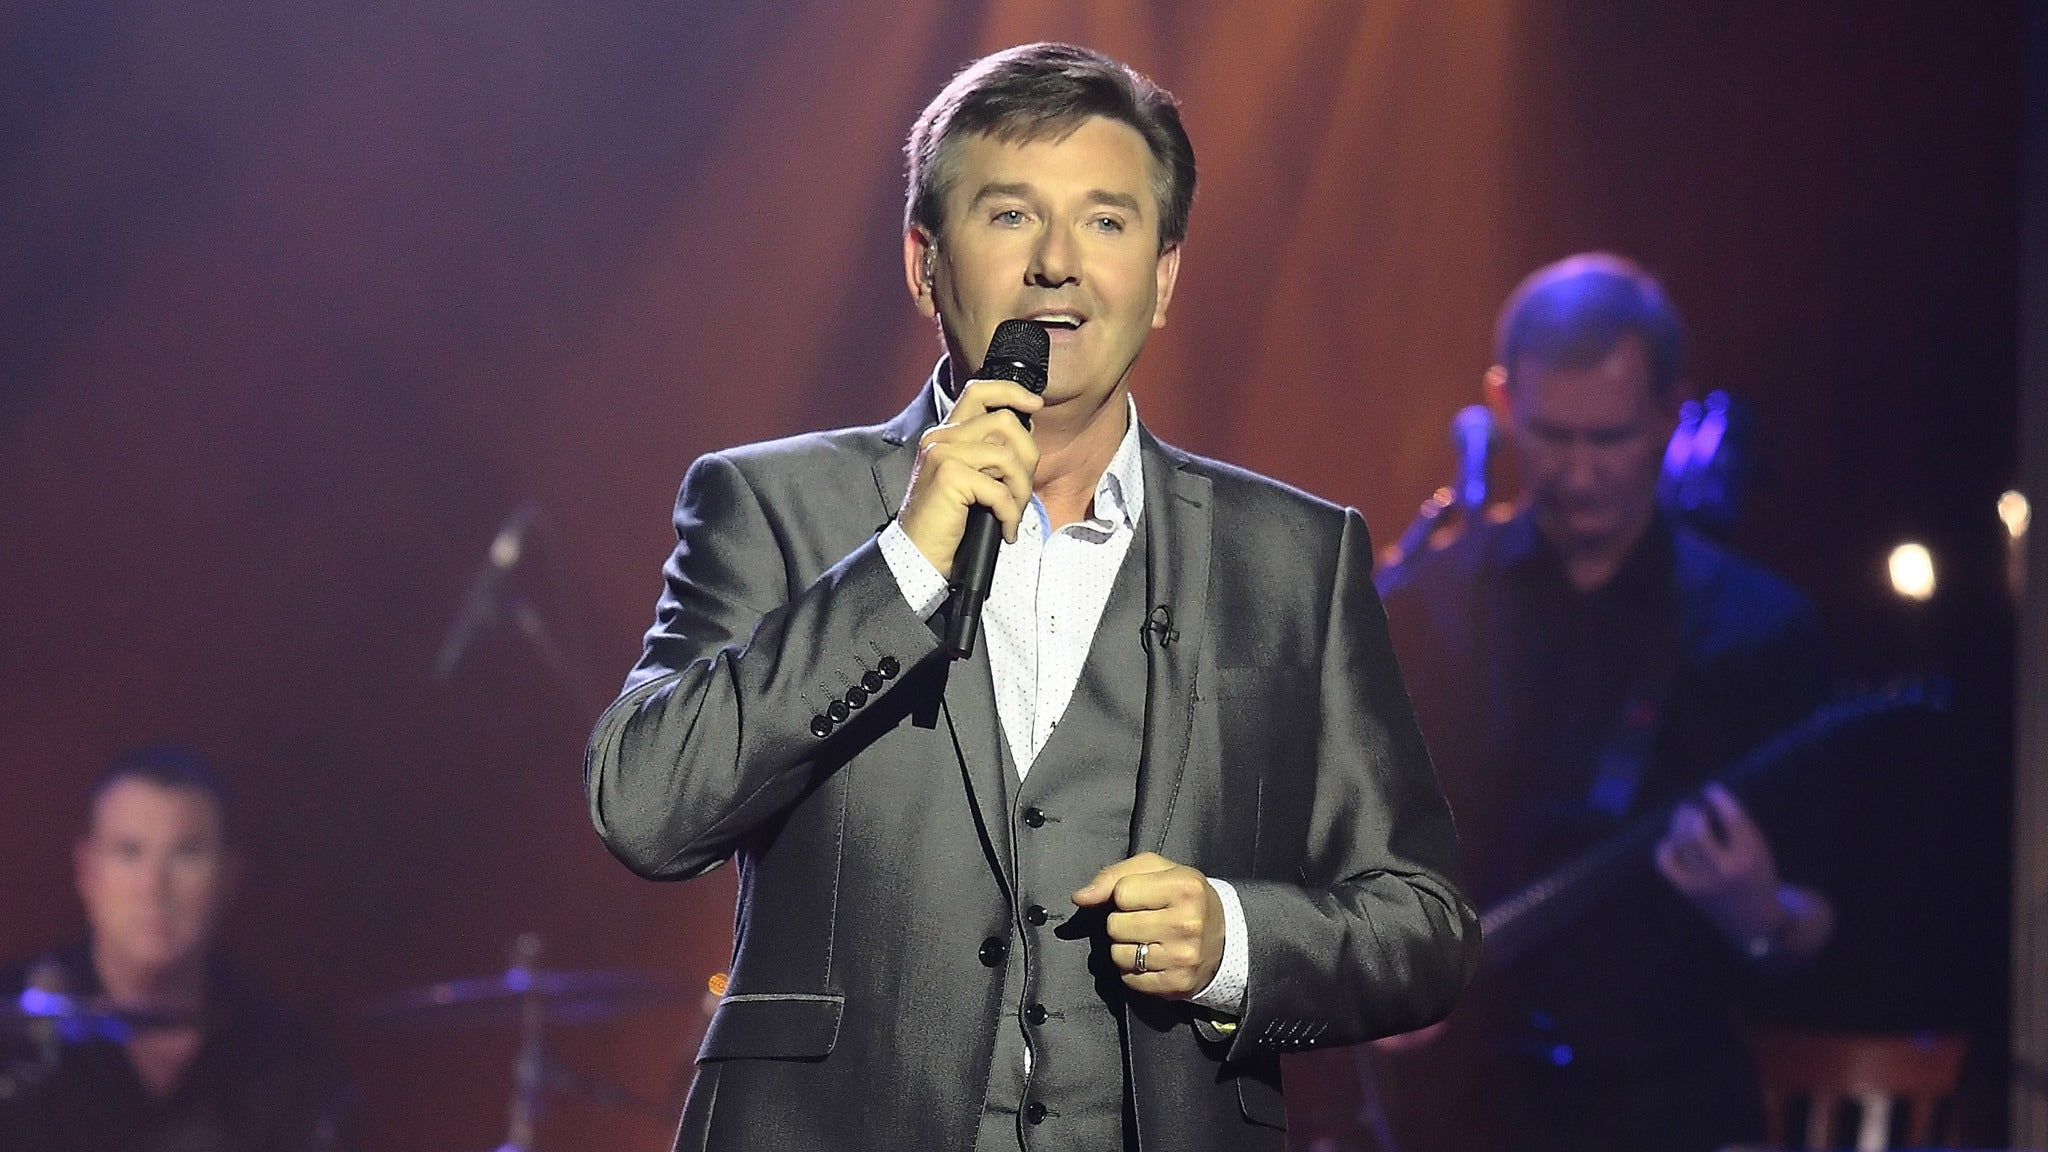 Christmas & More with Daniel O'Donnell pre-sale code for early tickets in Prior Lake